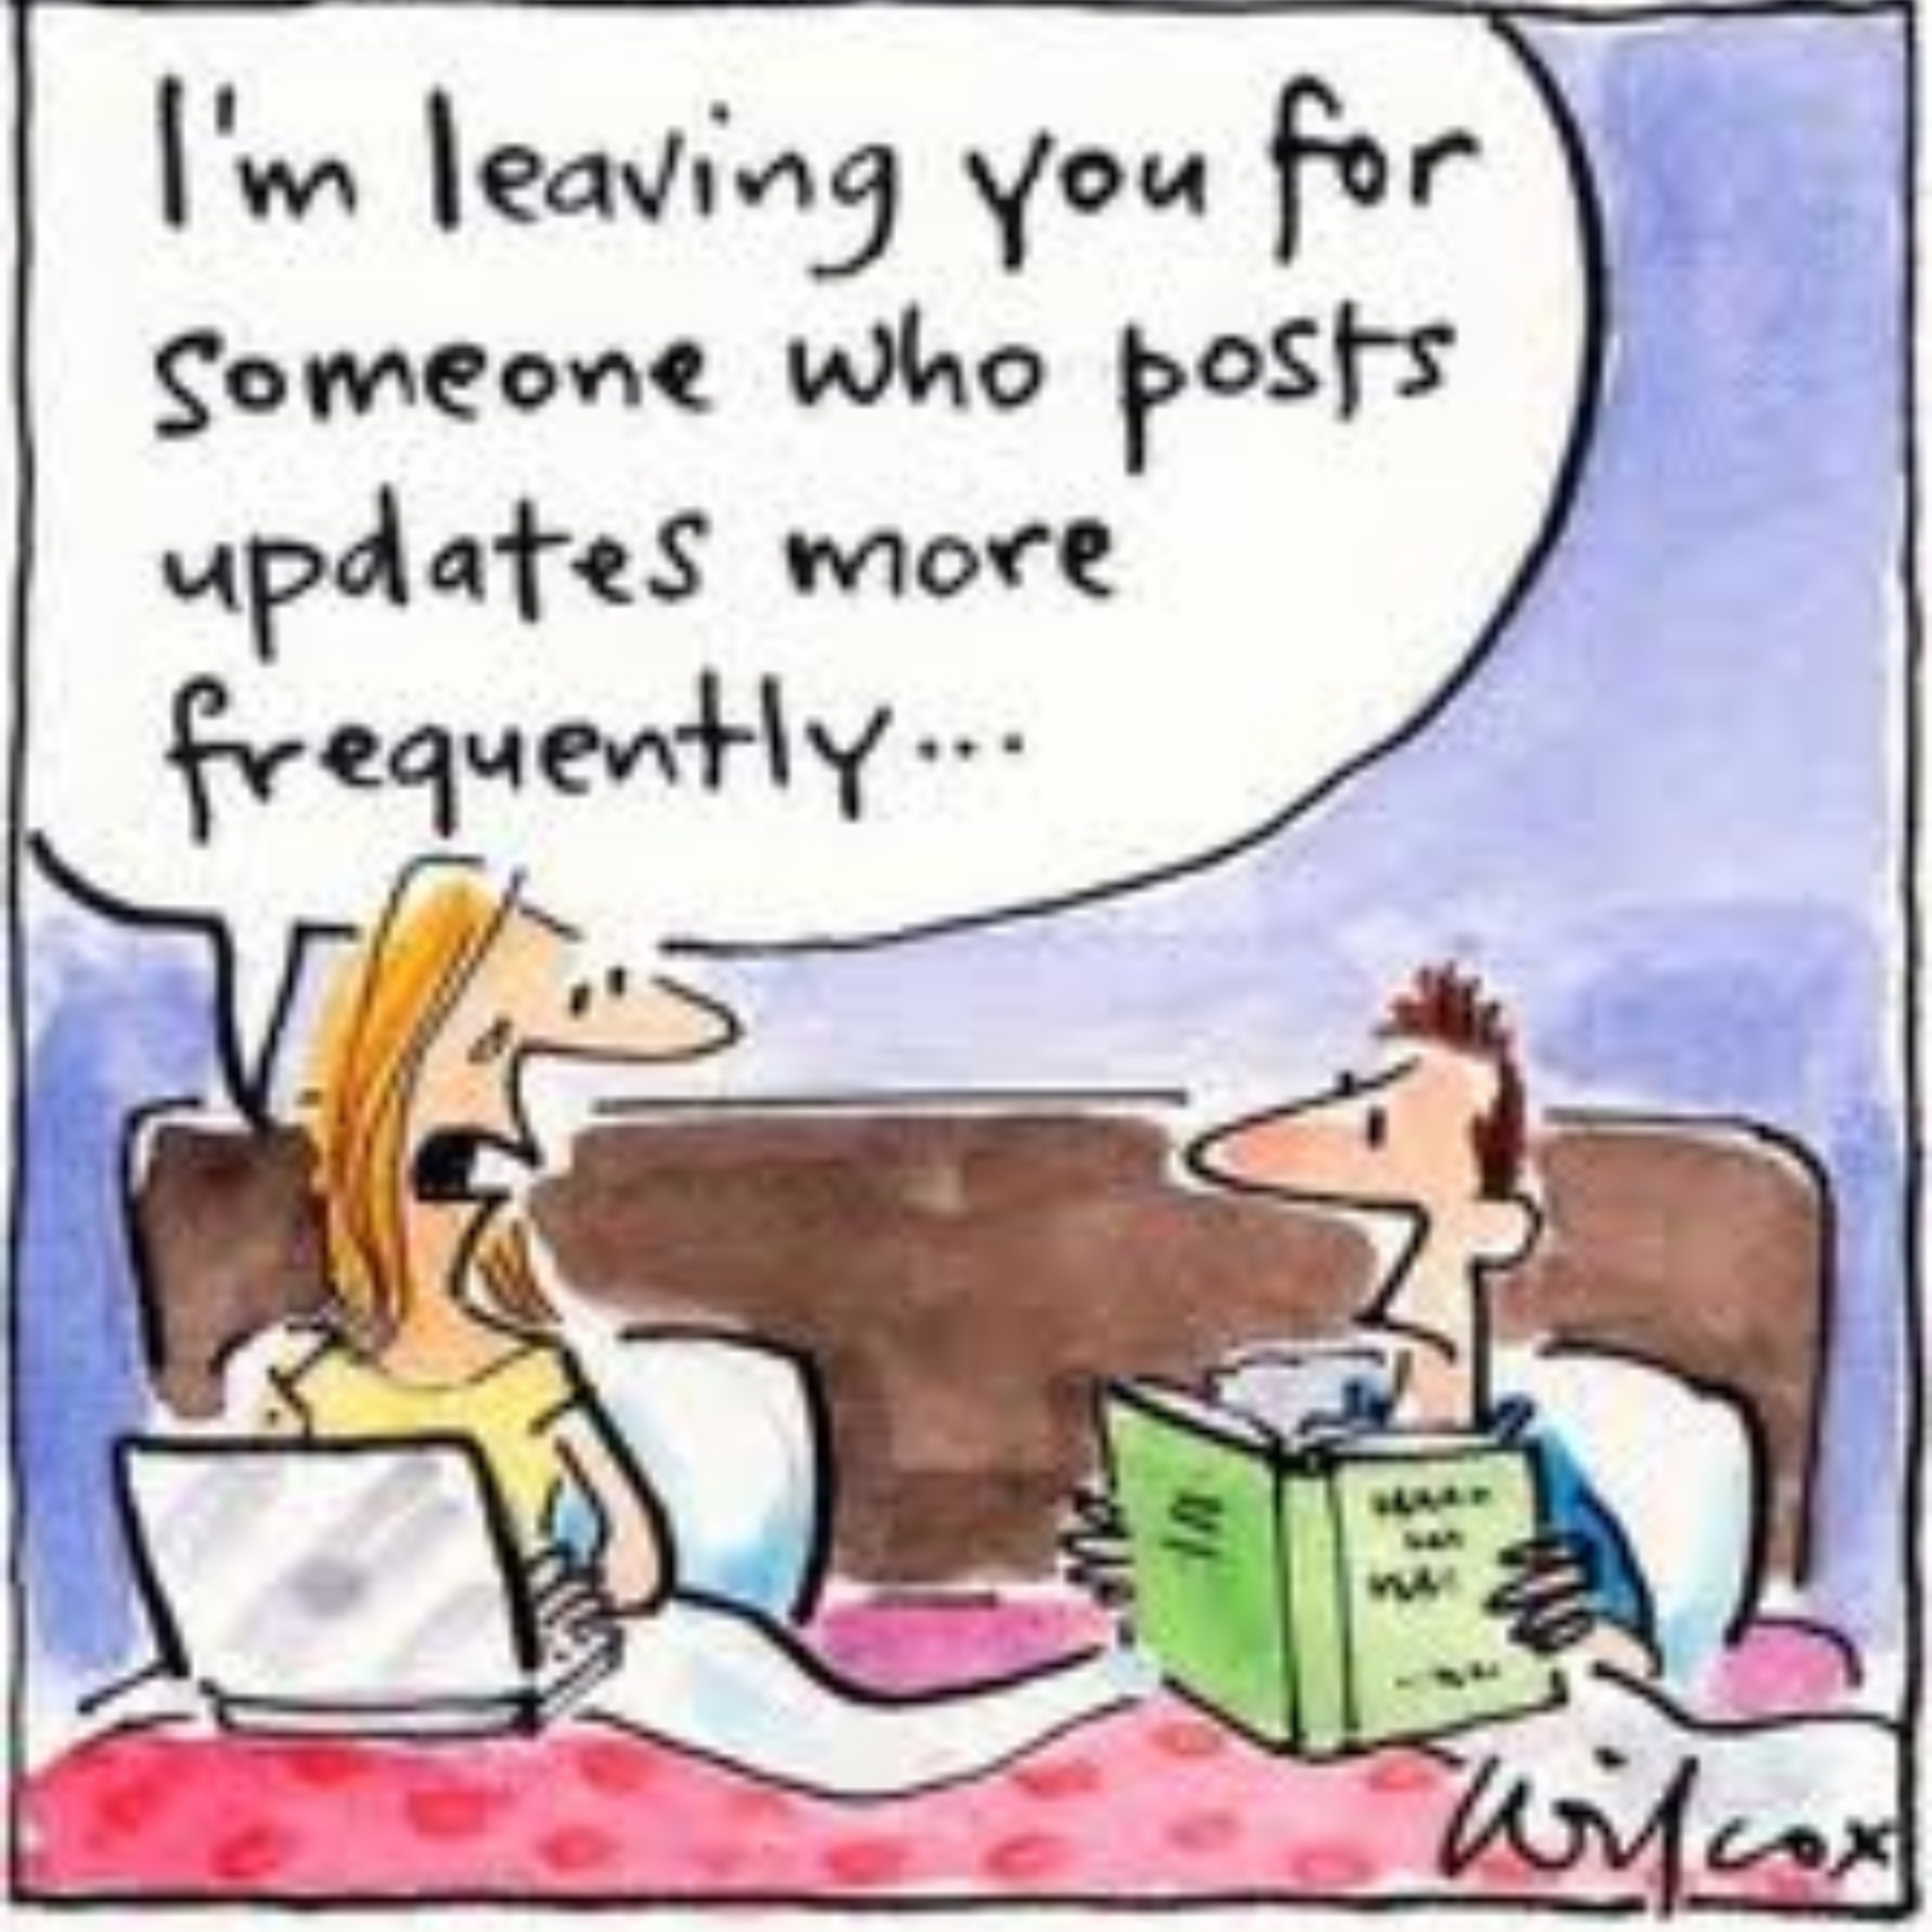 Social media and it's effect on relationships